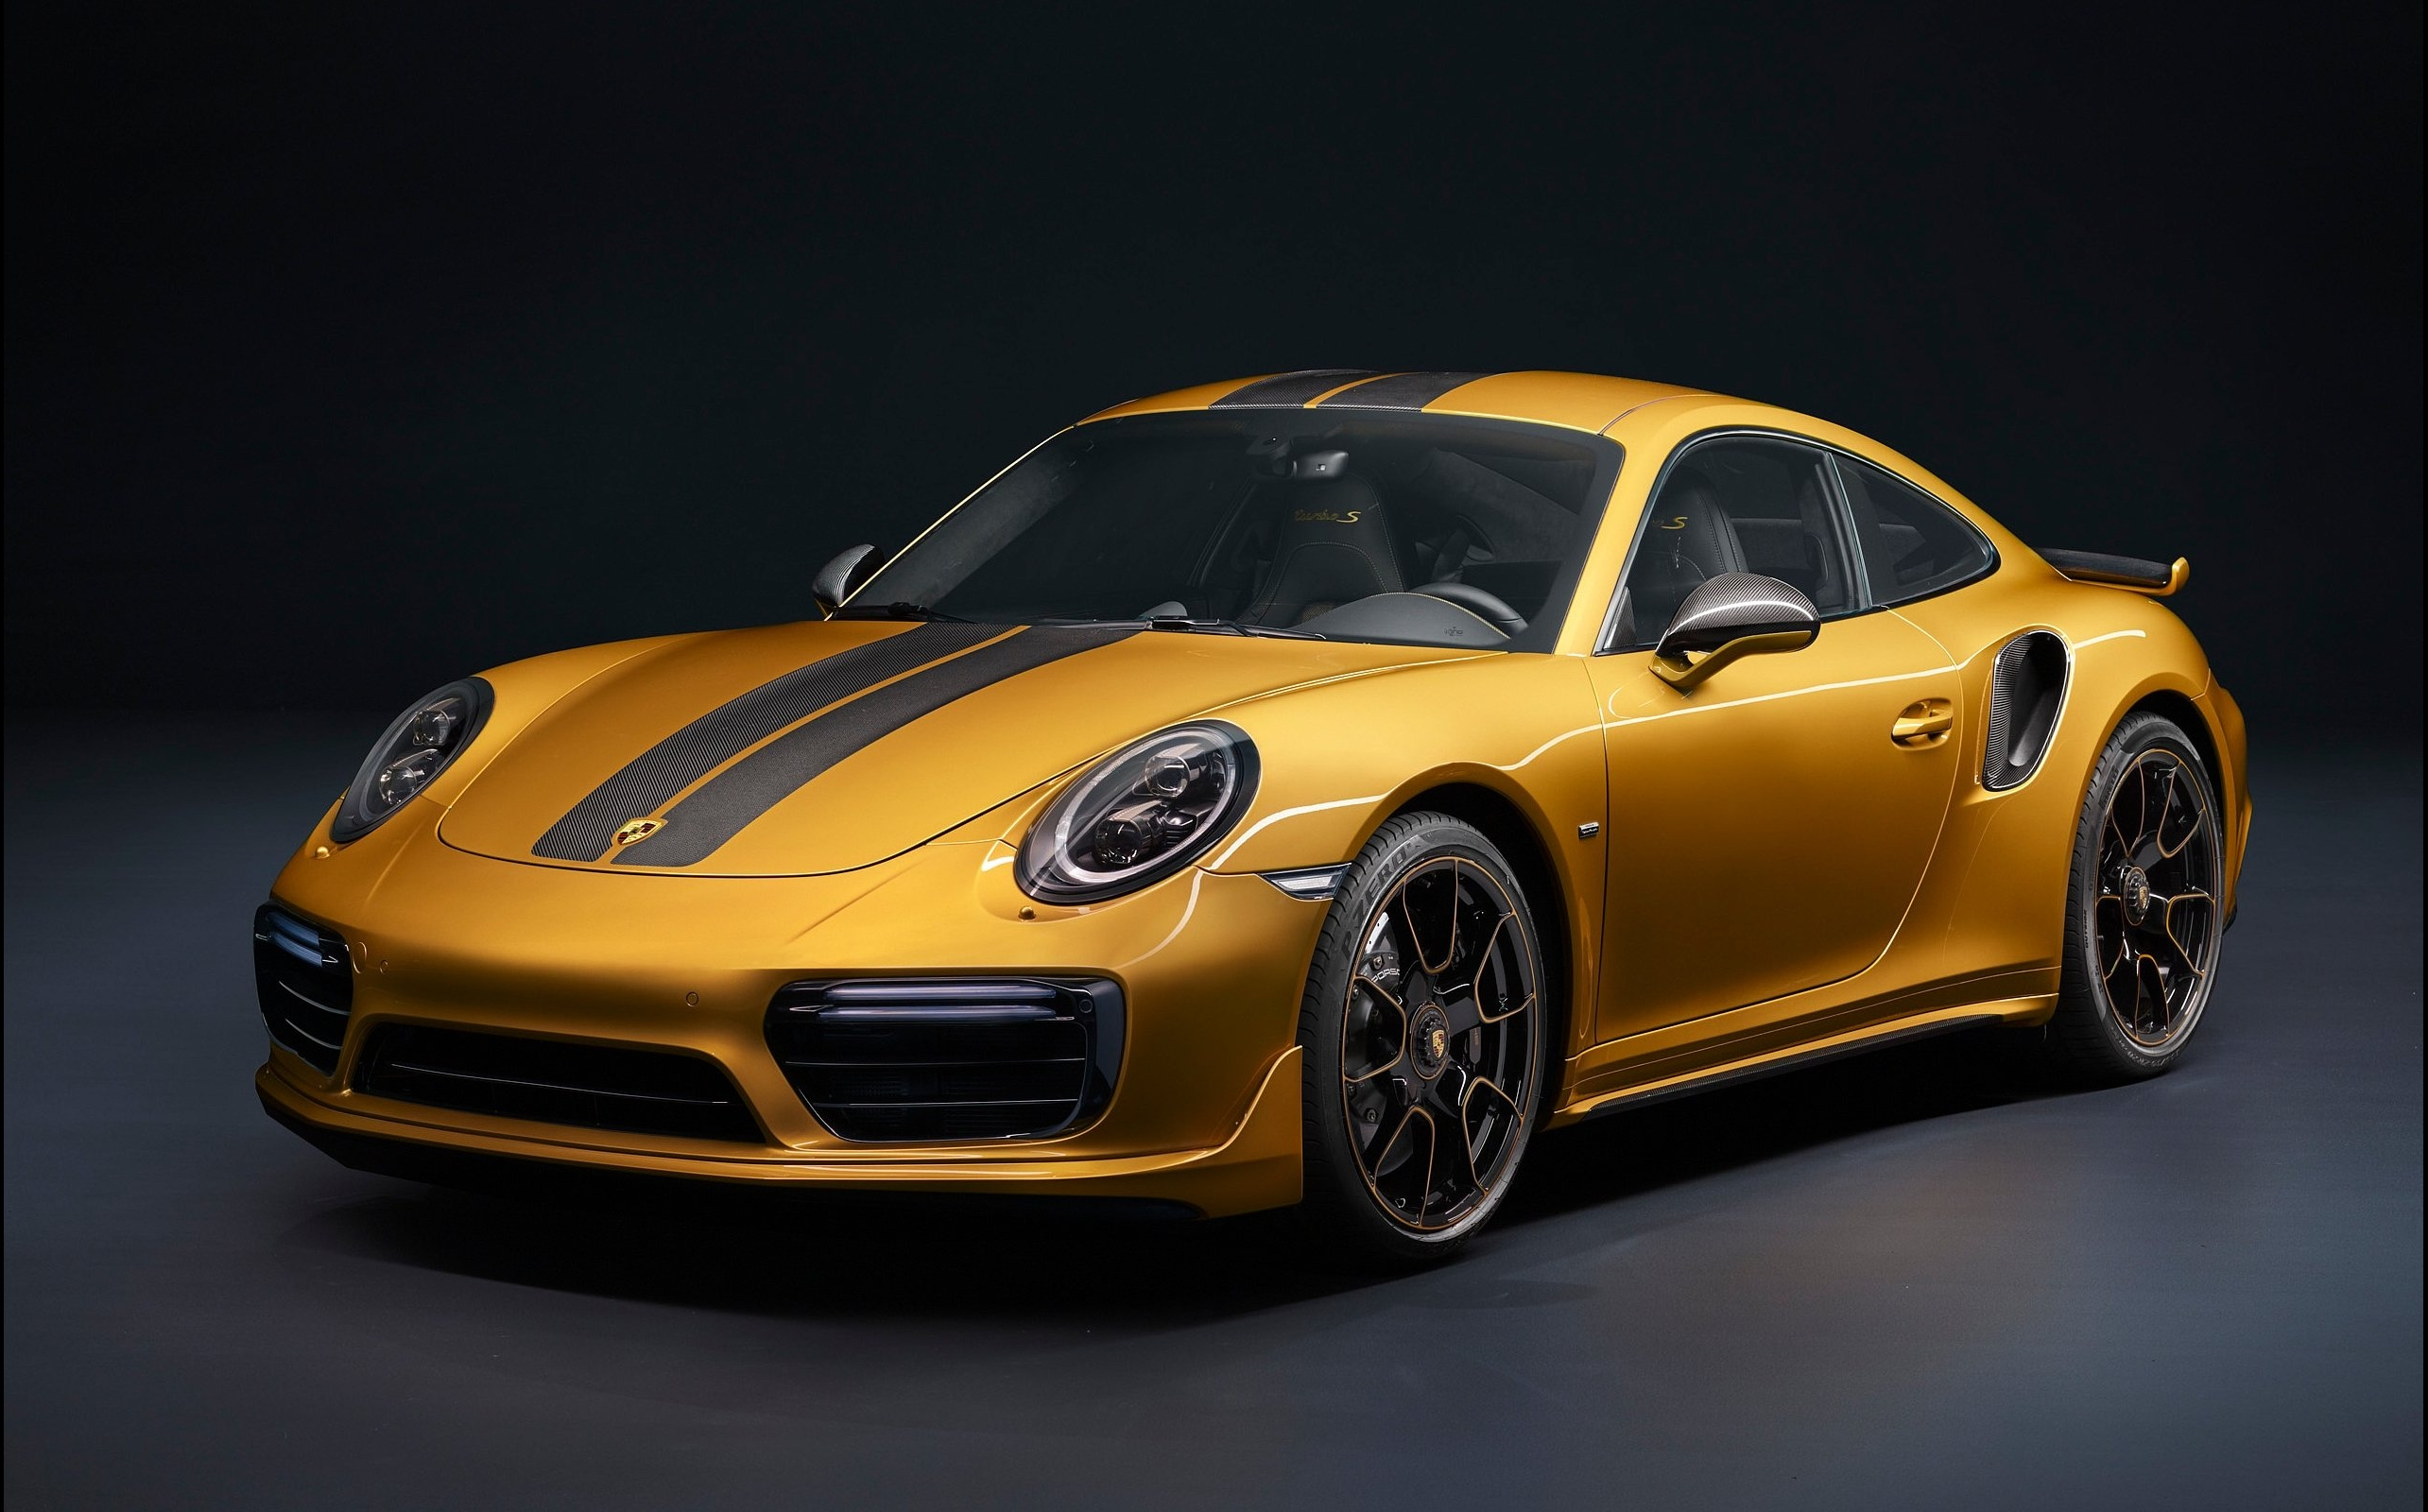 98 Porsche 911 Turbo HD Wallpapers Background Images   Wallpaper 2569x1600